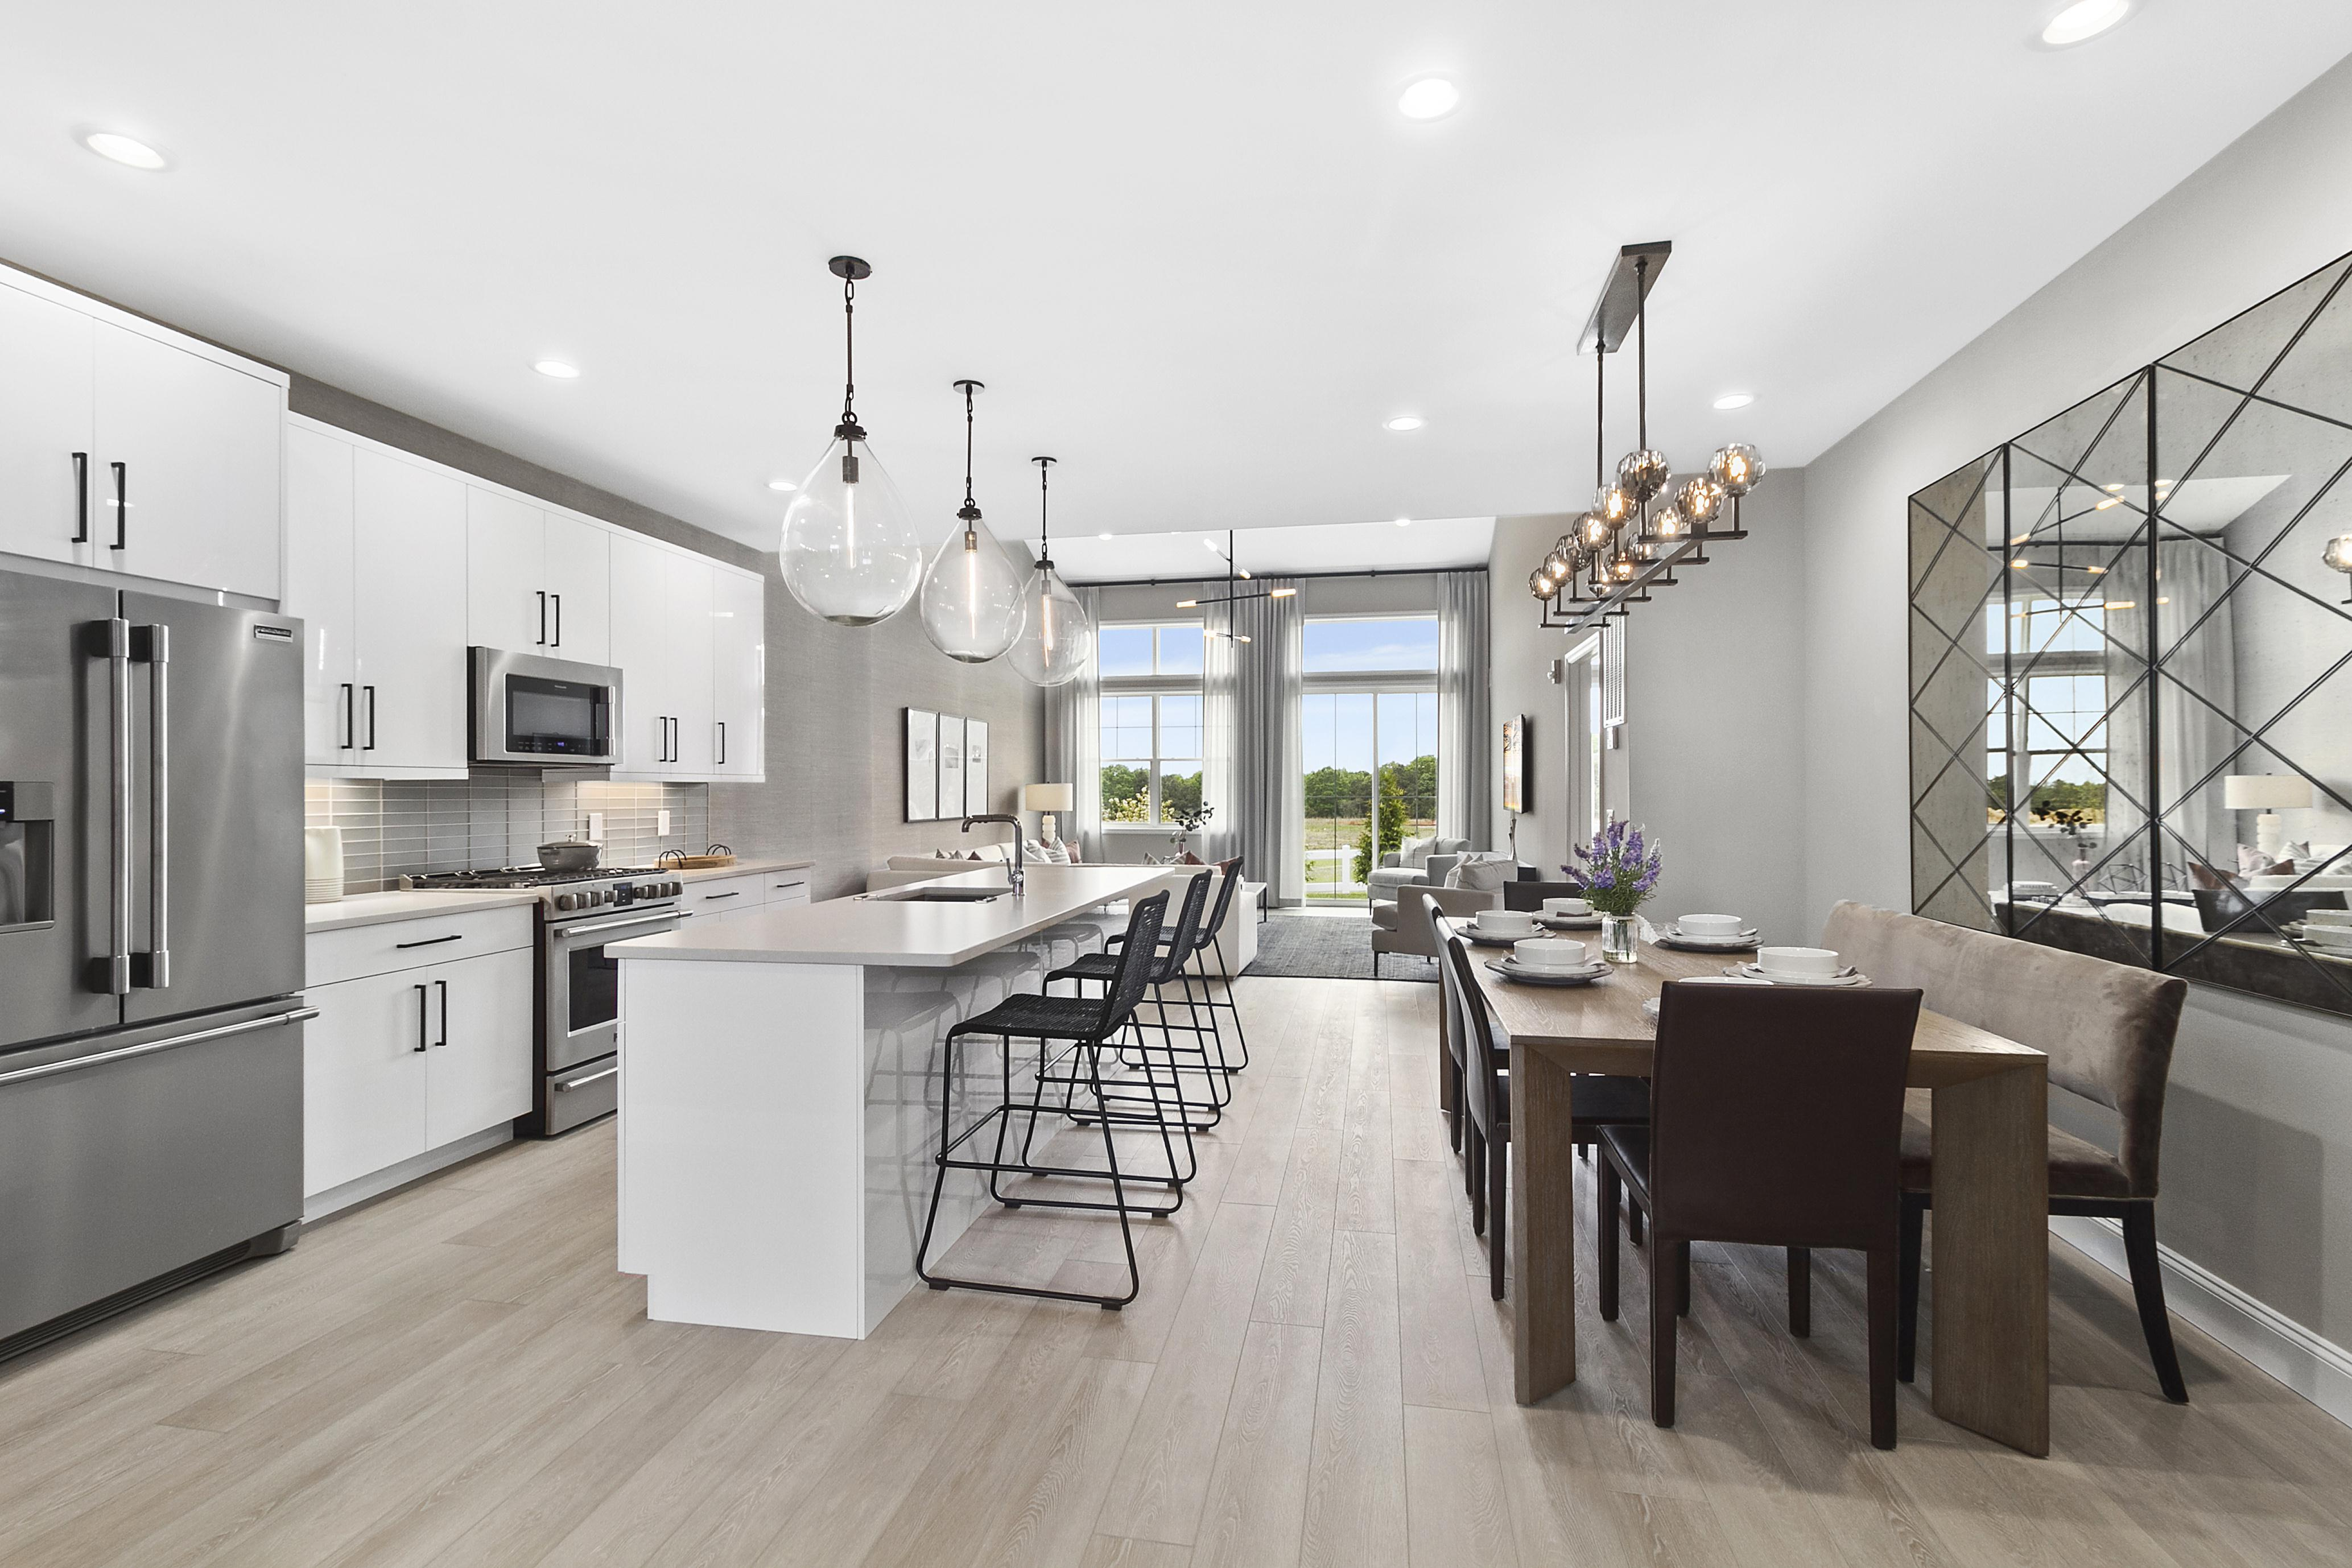 Living Area featured in The Devonshire By Beechwood Homes in Nassau-Suffolk, NY